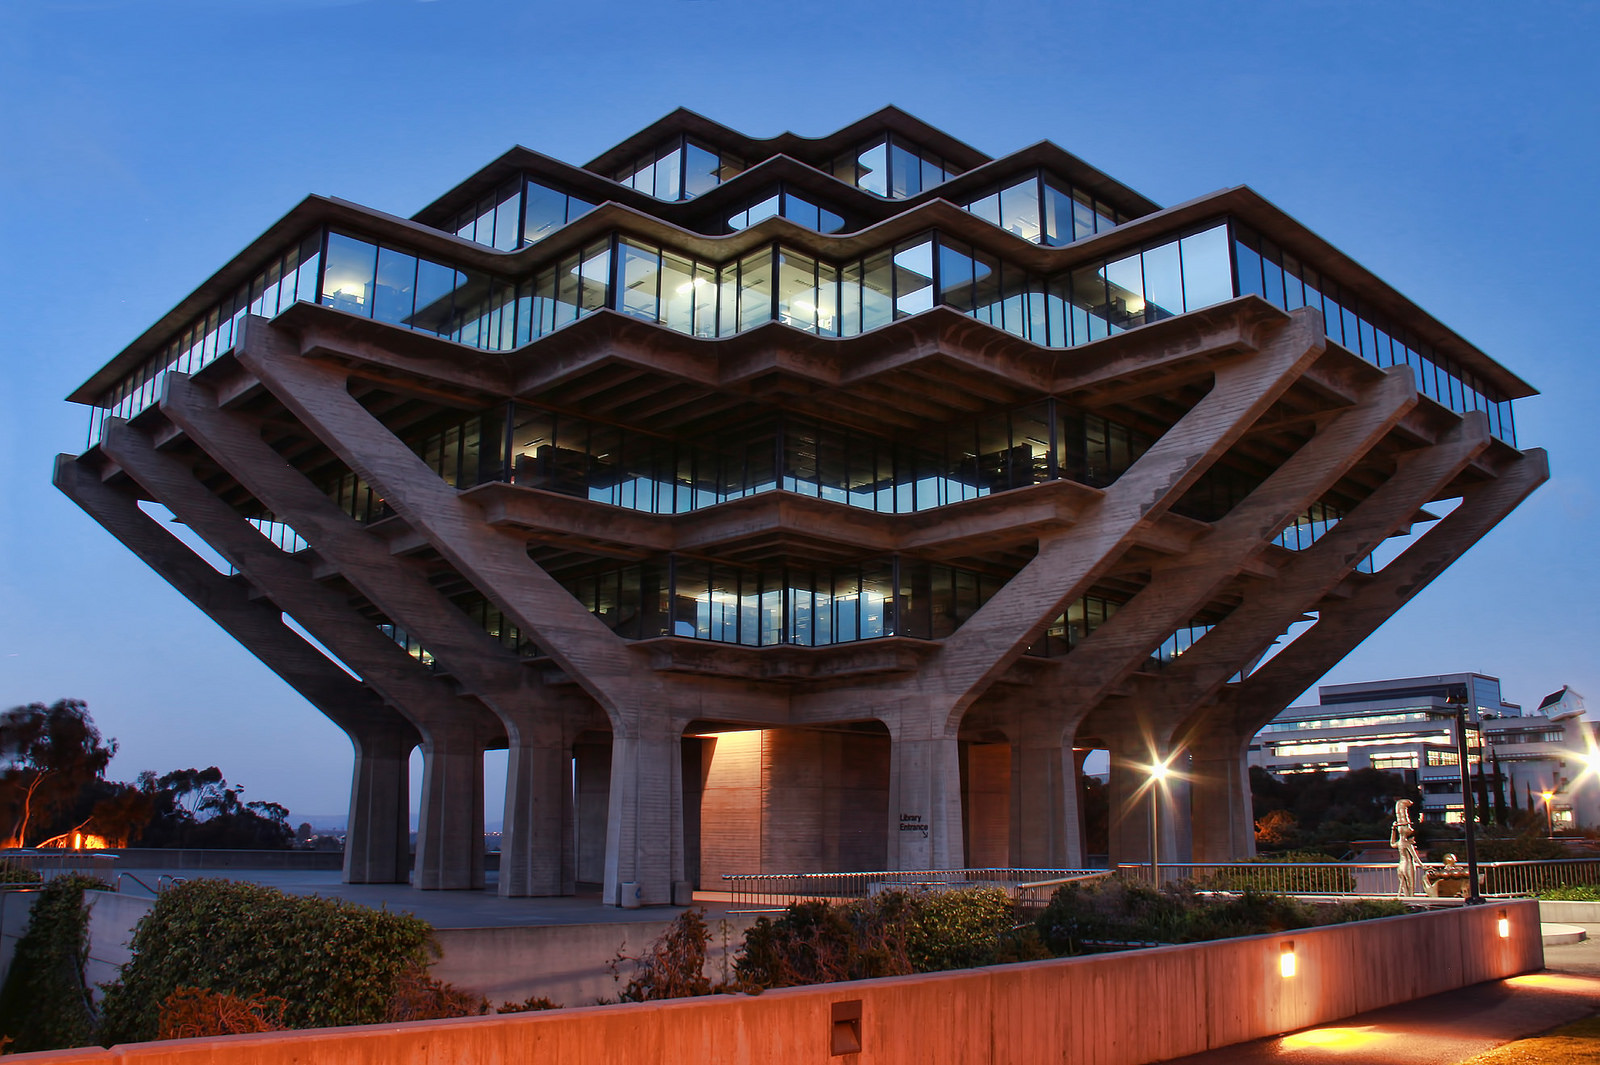 Night View of The Geisel Library, University of California San Diego